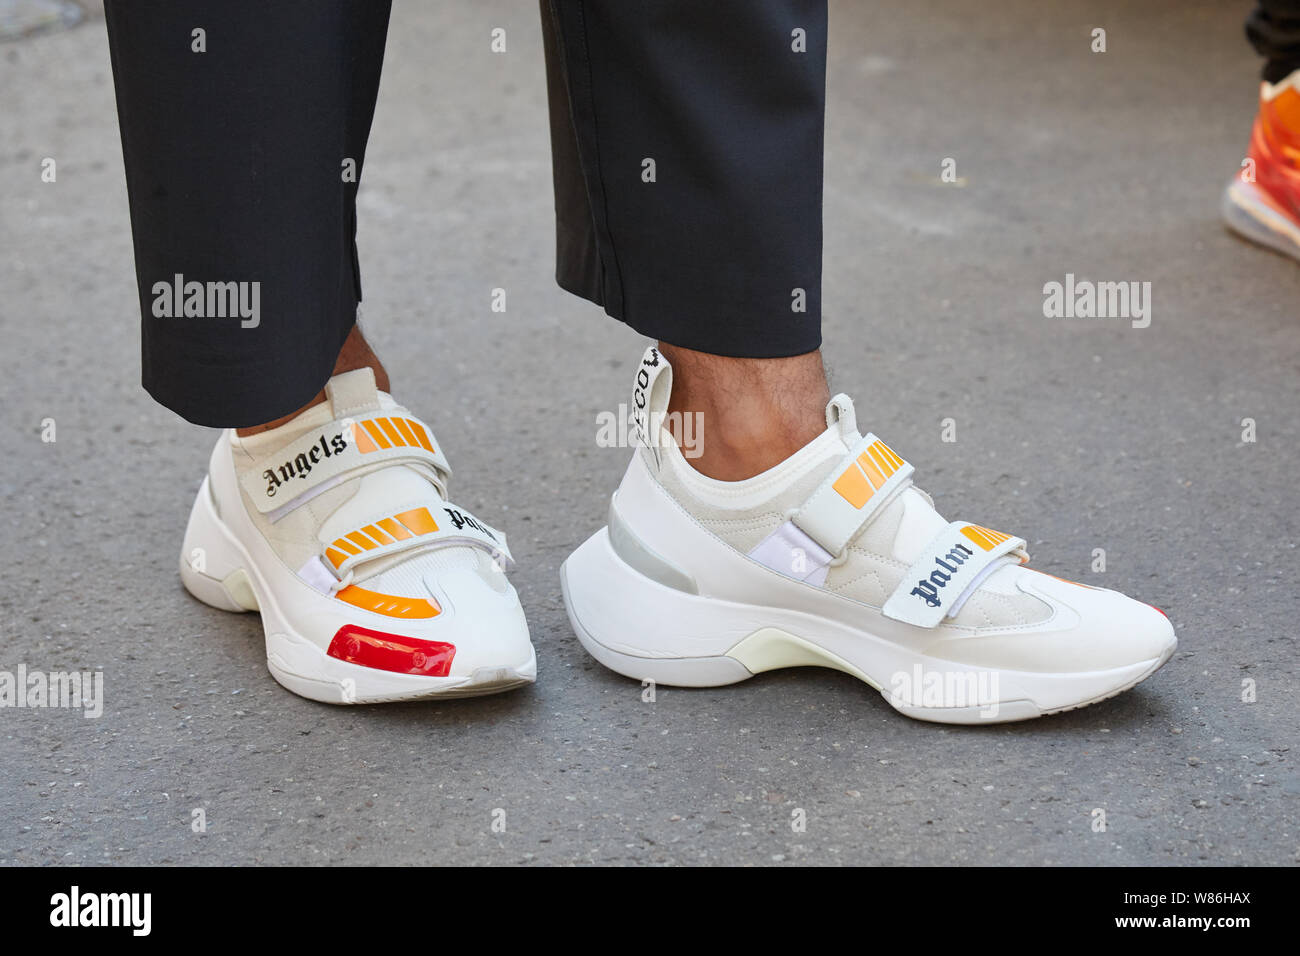 MILAN, ITALY - JUNE 16, 2019: Man with